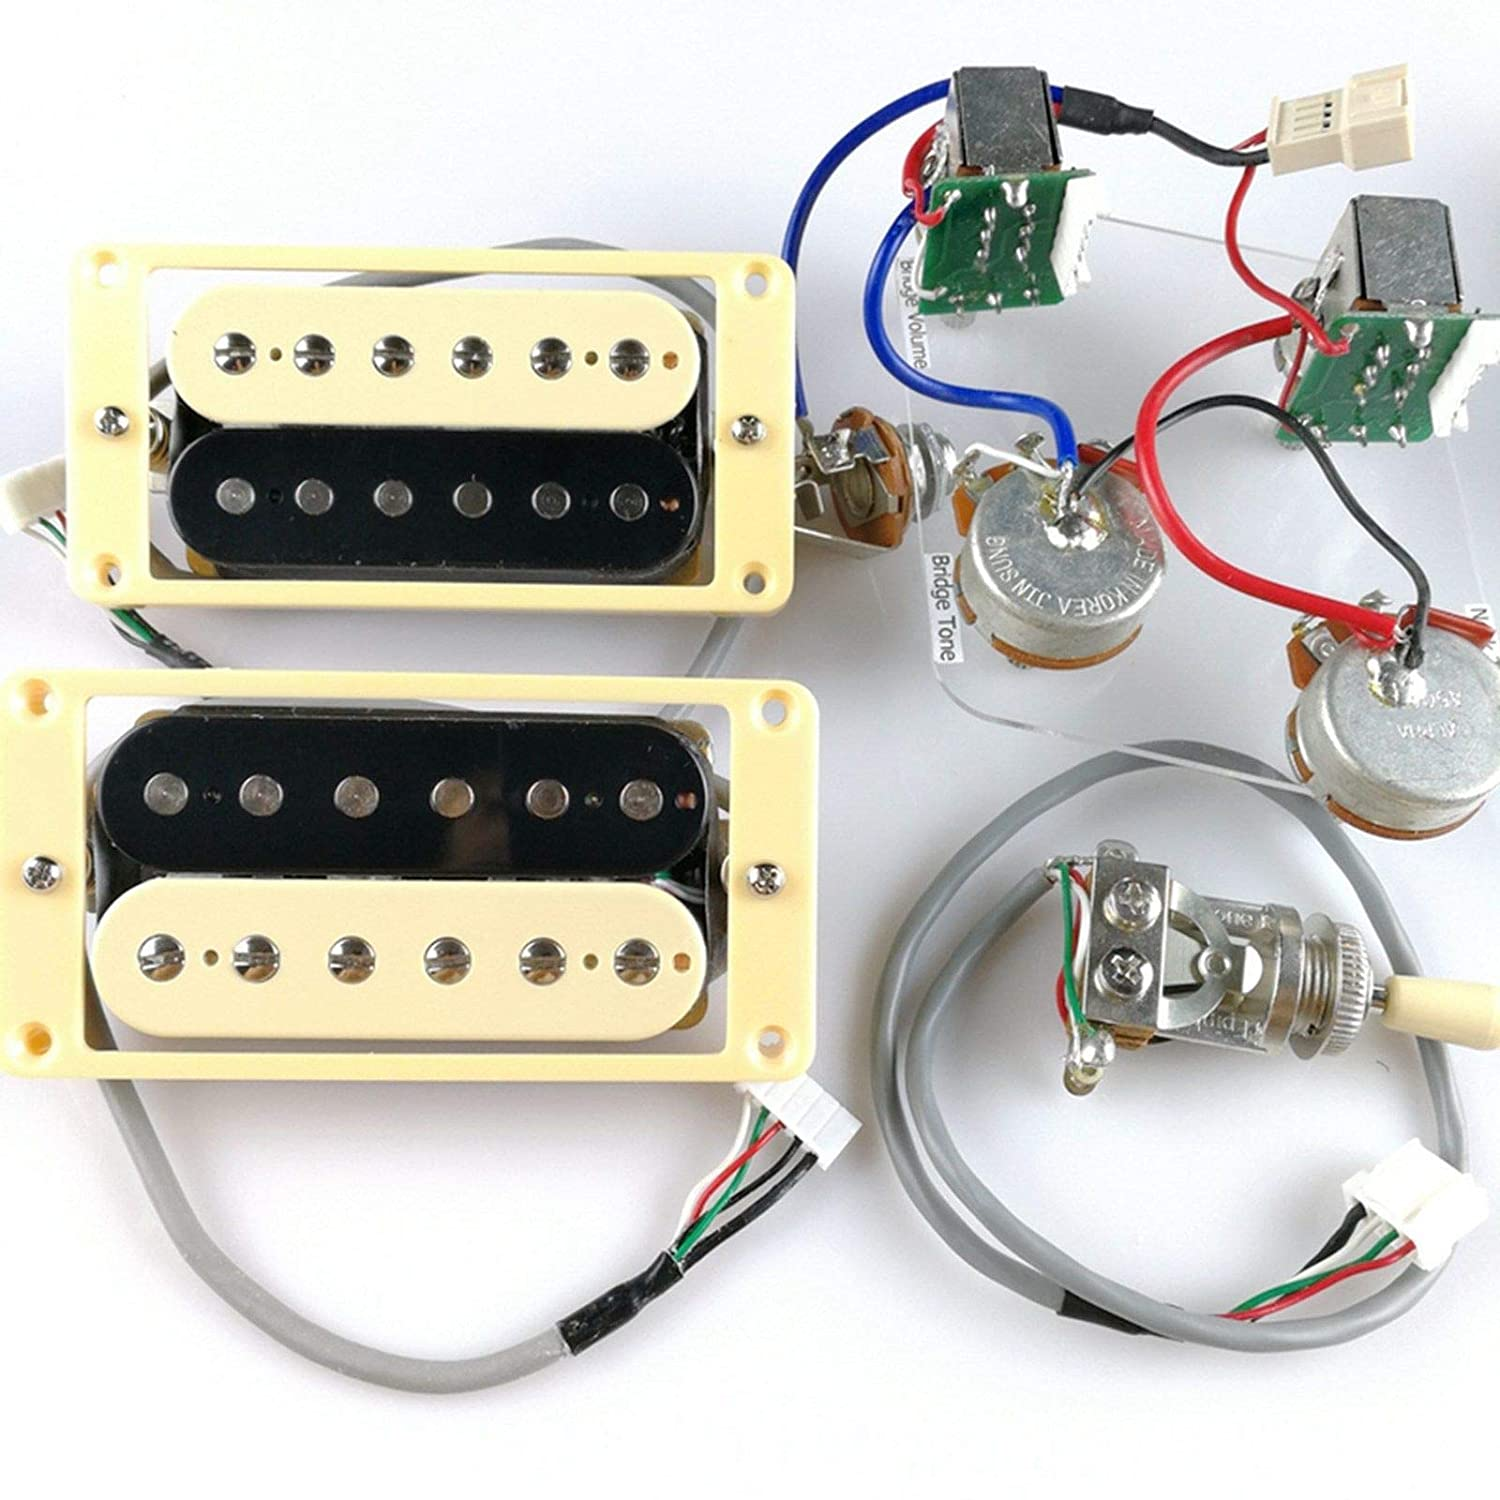 Epiphone Pro Wiring Harness Library 335 Pots Switch Kit For Gibson Guitar Complete With Diagram Amazoncom 1 Set Probucker Alnico Bridgeneck Pickups Pots3 Way